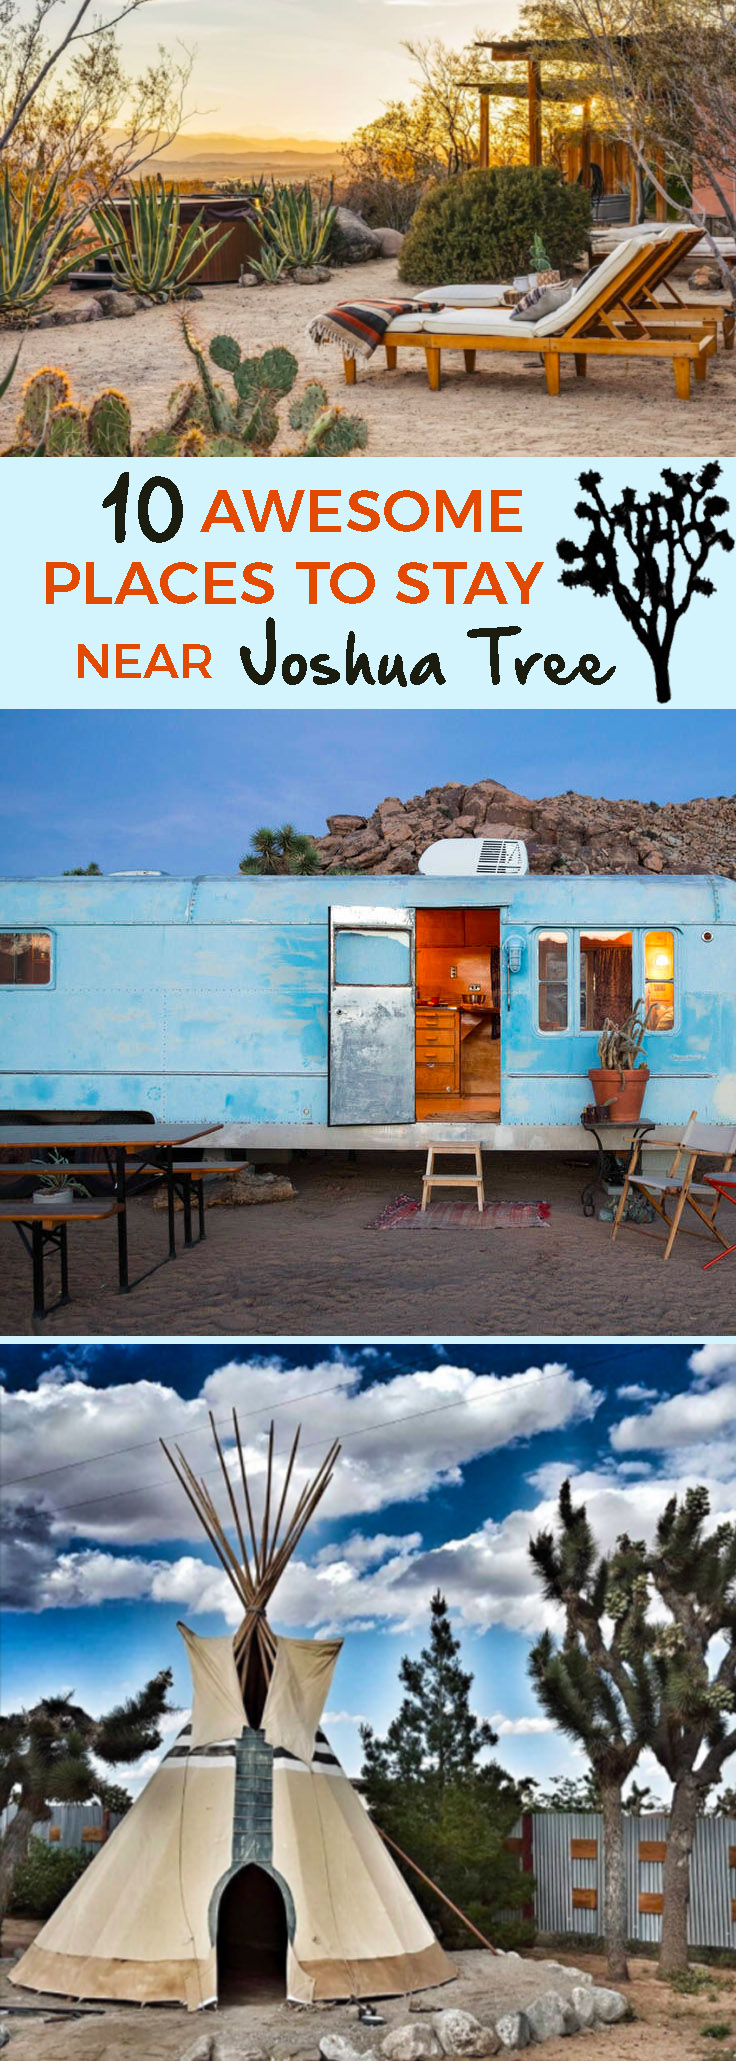 Joshua Tree National Park and surrounds have long been popular with artists, recluses and dreamers. Here are some amazing places to stay near Joshua Tree. - theweekendguide.com